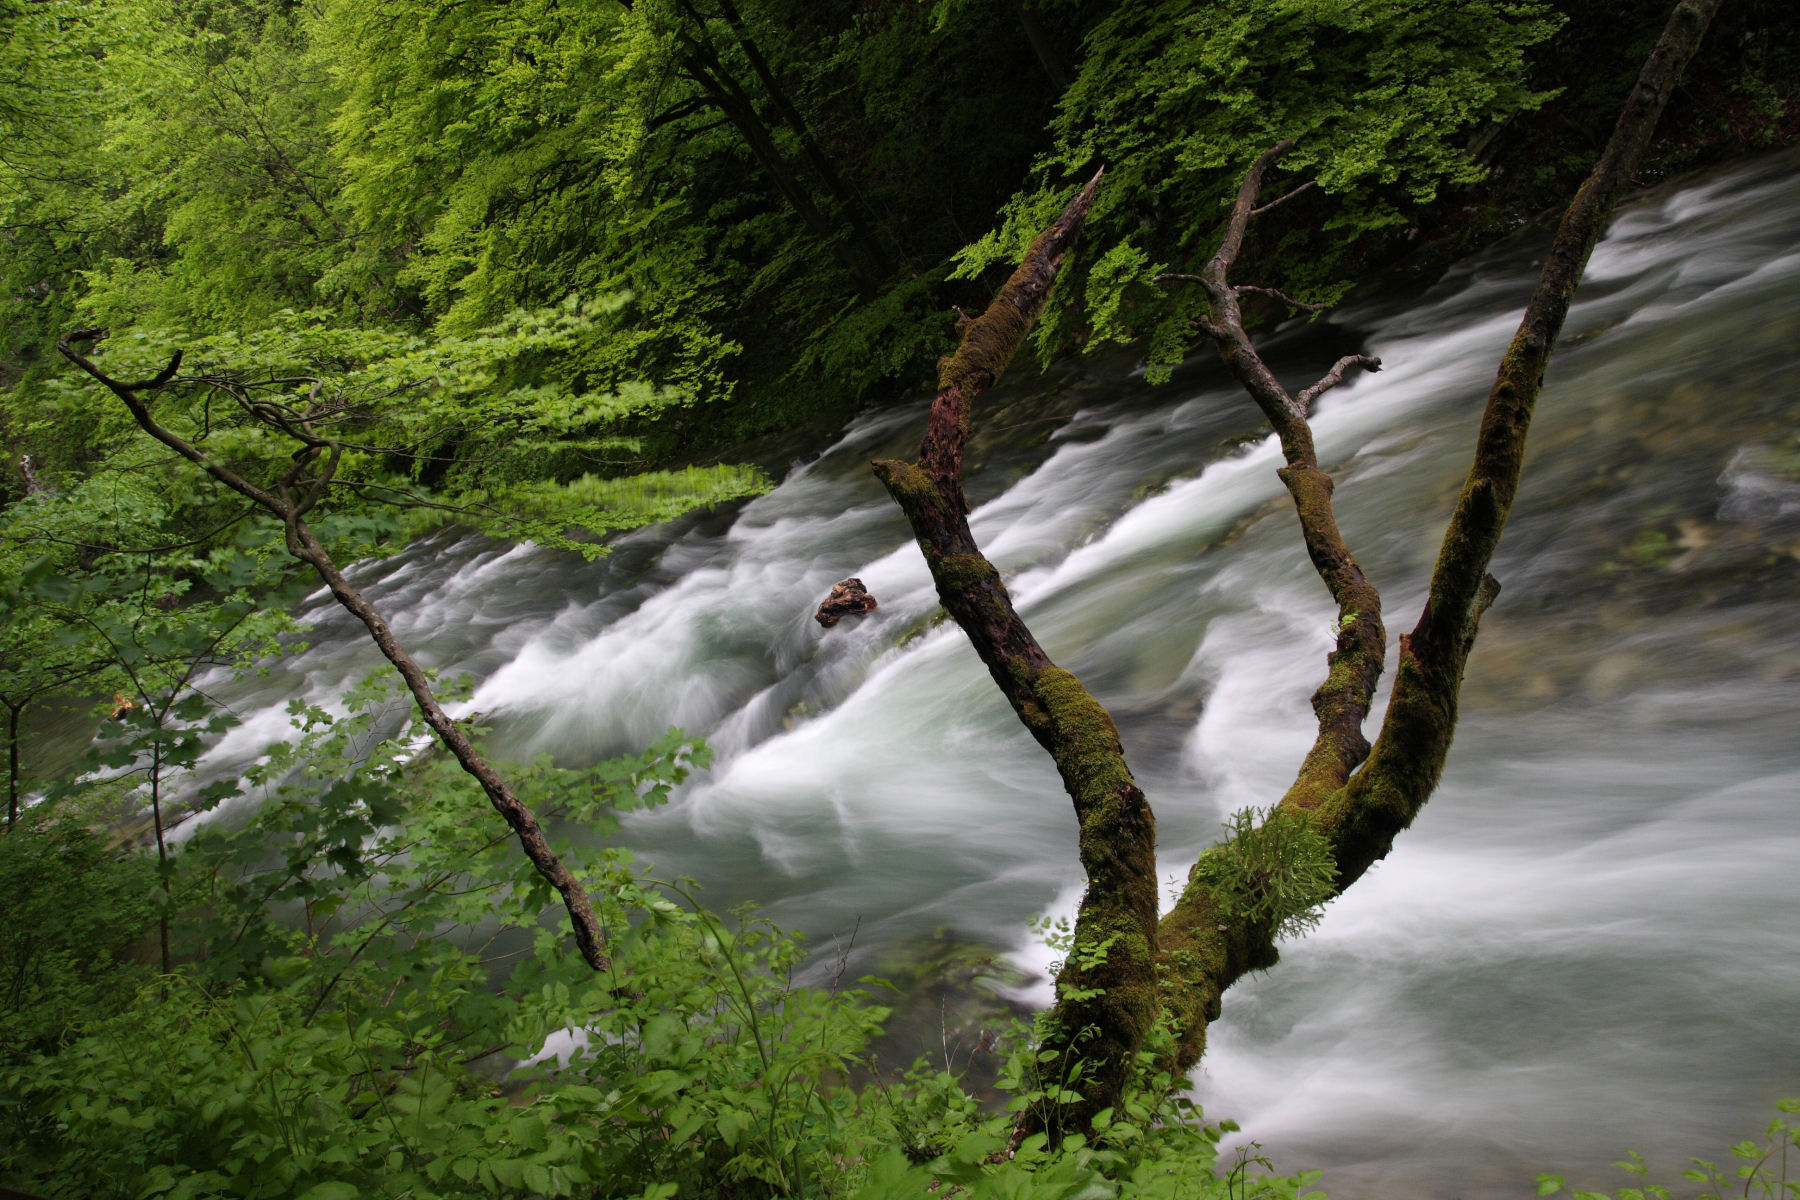 Vintgar Gorge is wonderful with lots of opportunities for that prize winning photo